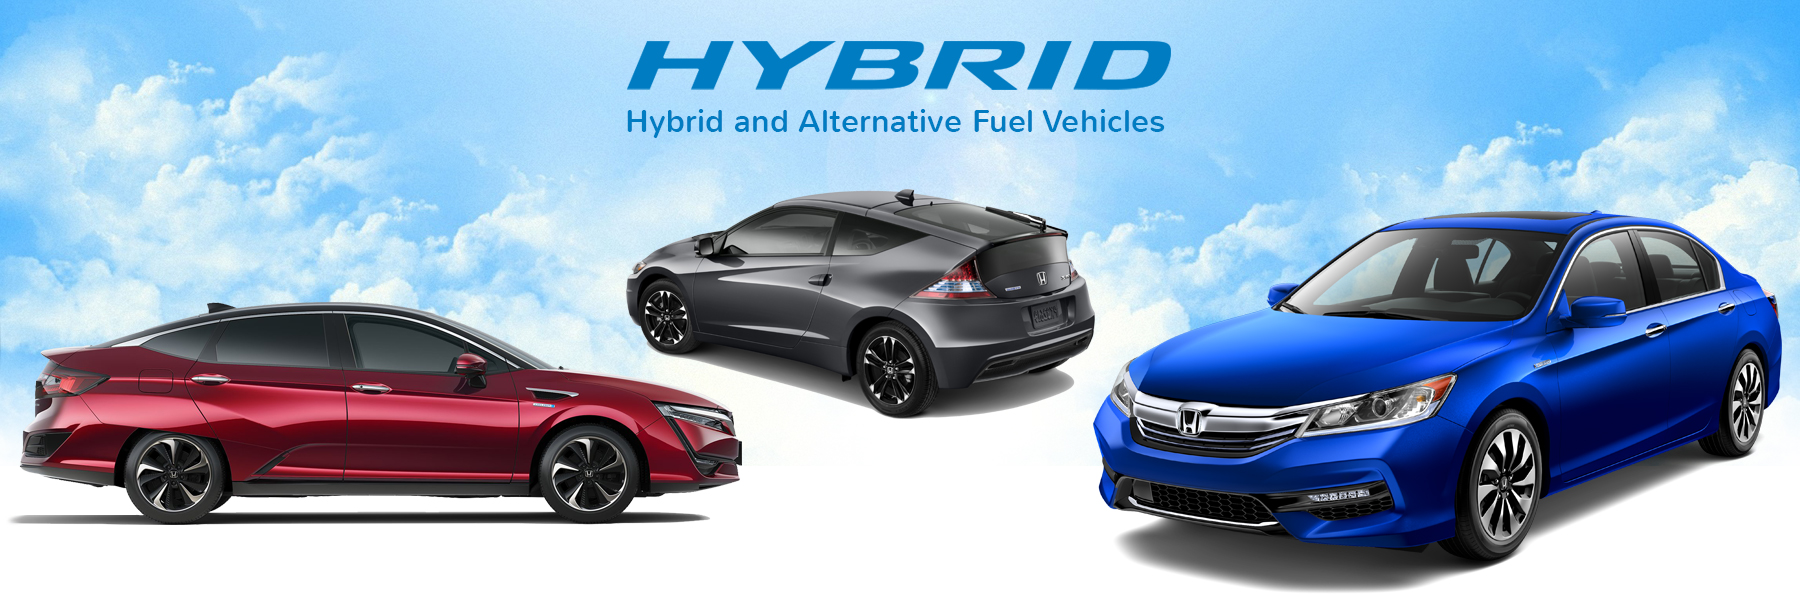 Civic Type R Awd >> Hybrid Cars and Alternative Fuel Vehicles | Montana Honda ...